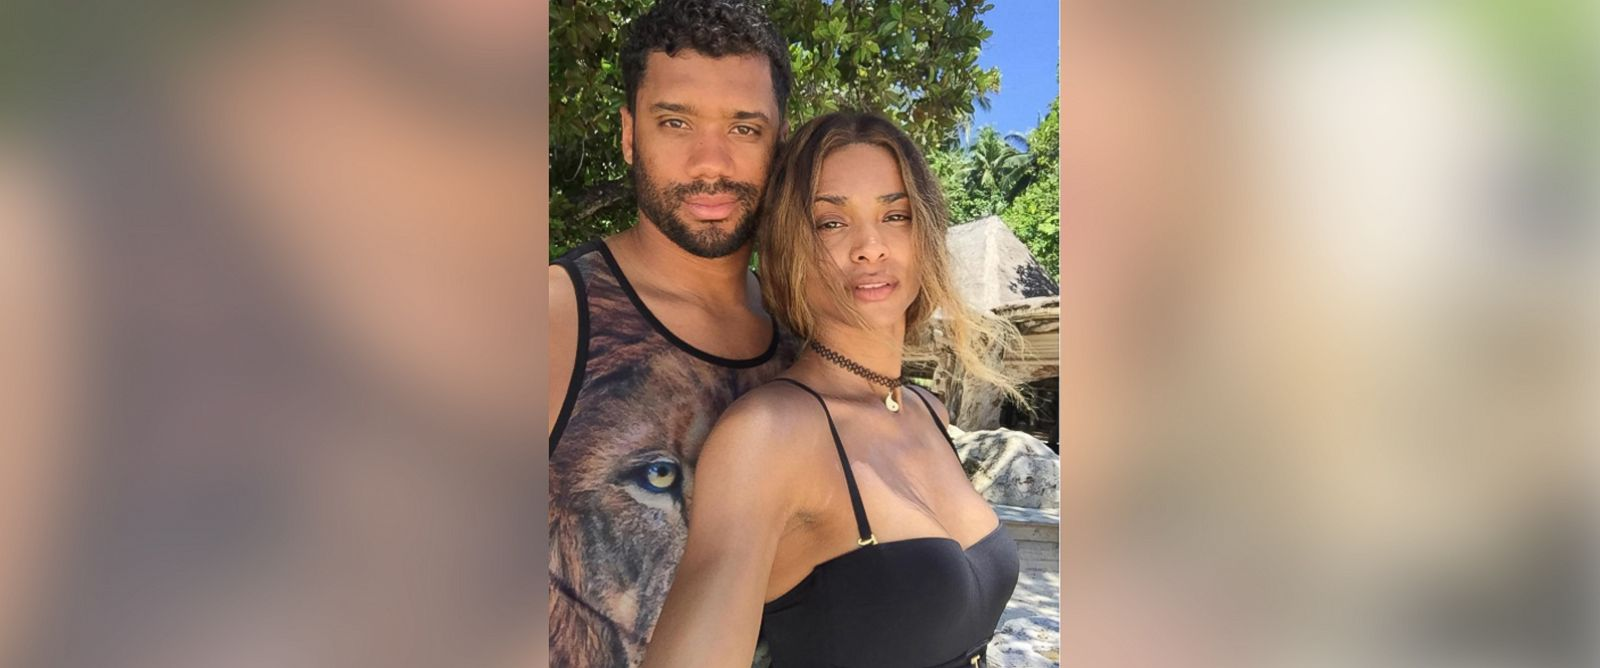 PHOTO: Ciara posted this photo of herself and Russell Wilson to her Instagram account on March 13, 2016